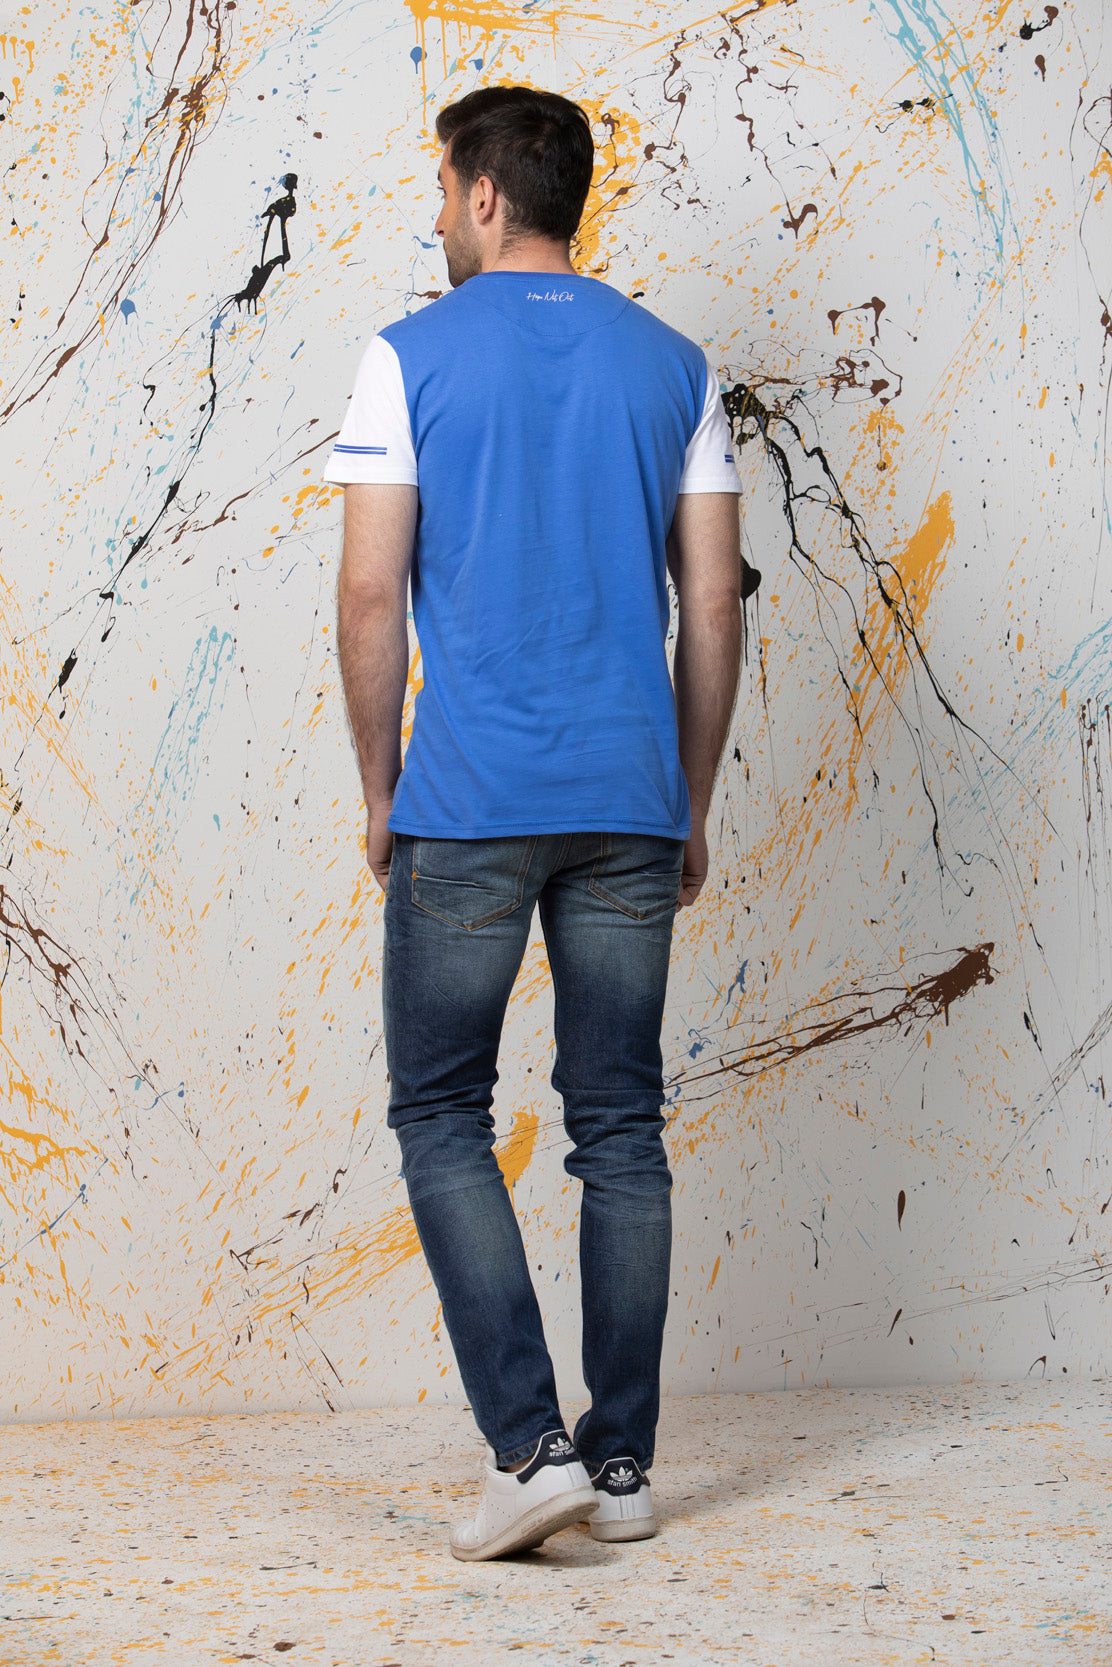 Blue T-Shirt HMKTS190035 - HOPE NOT OUT